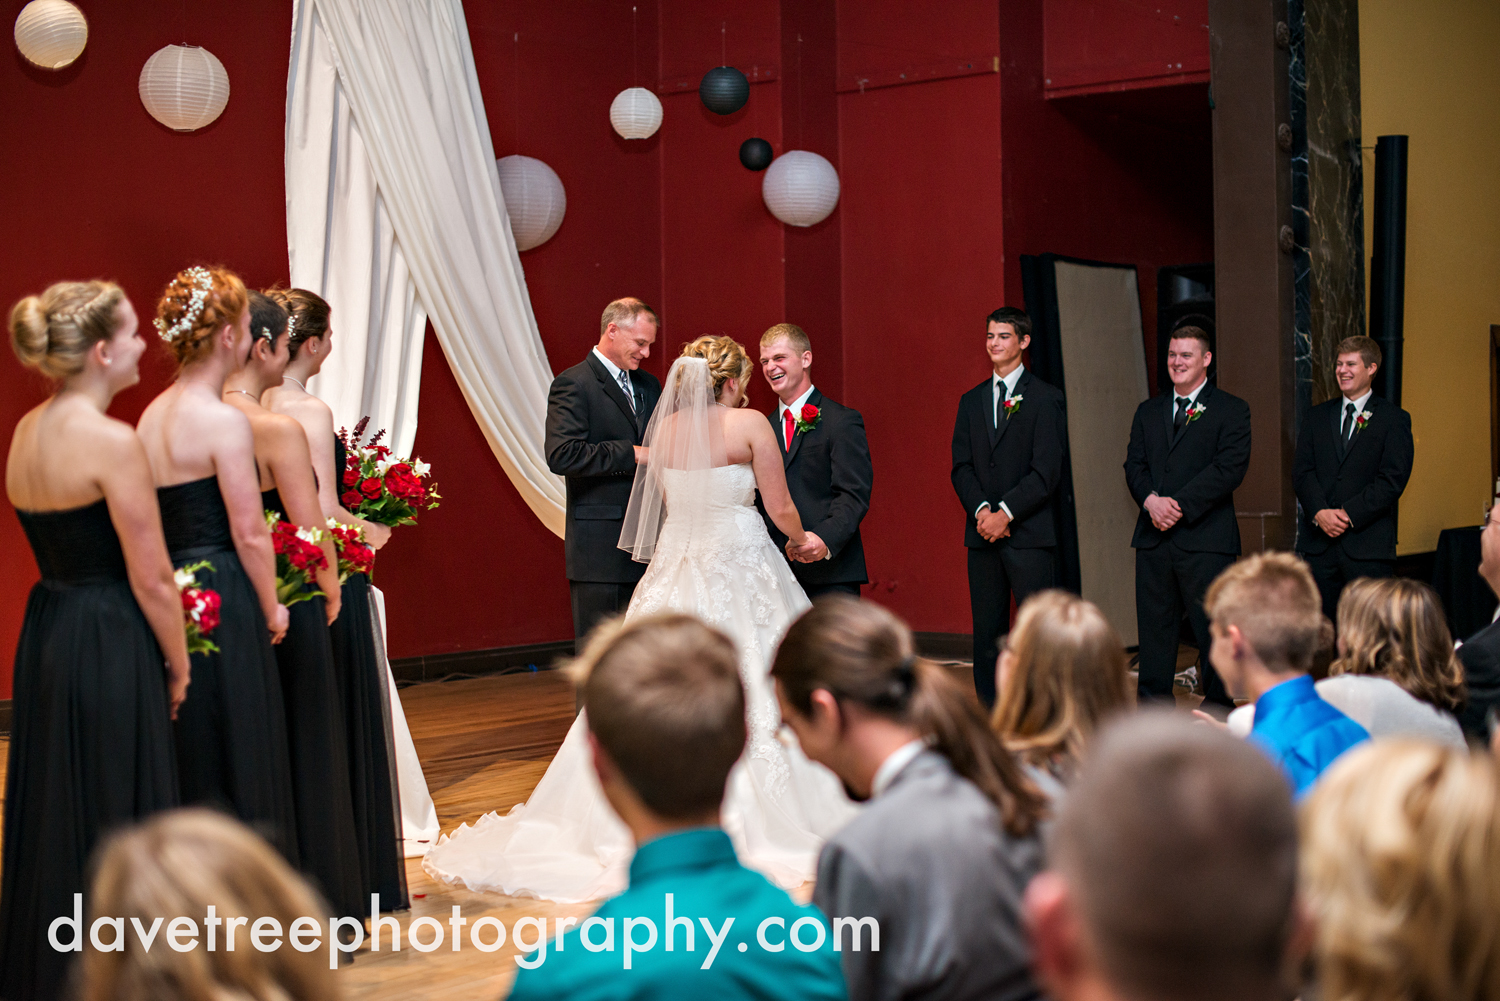 holland_wedding_photographer_35.jpg